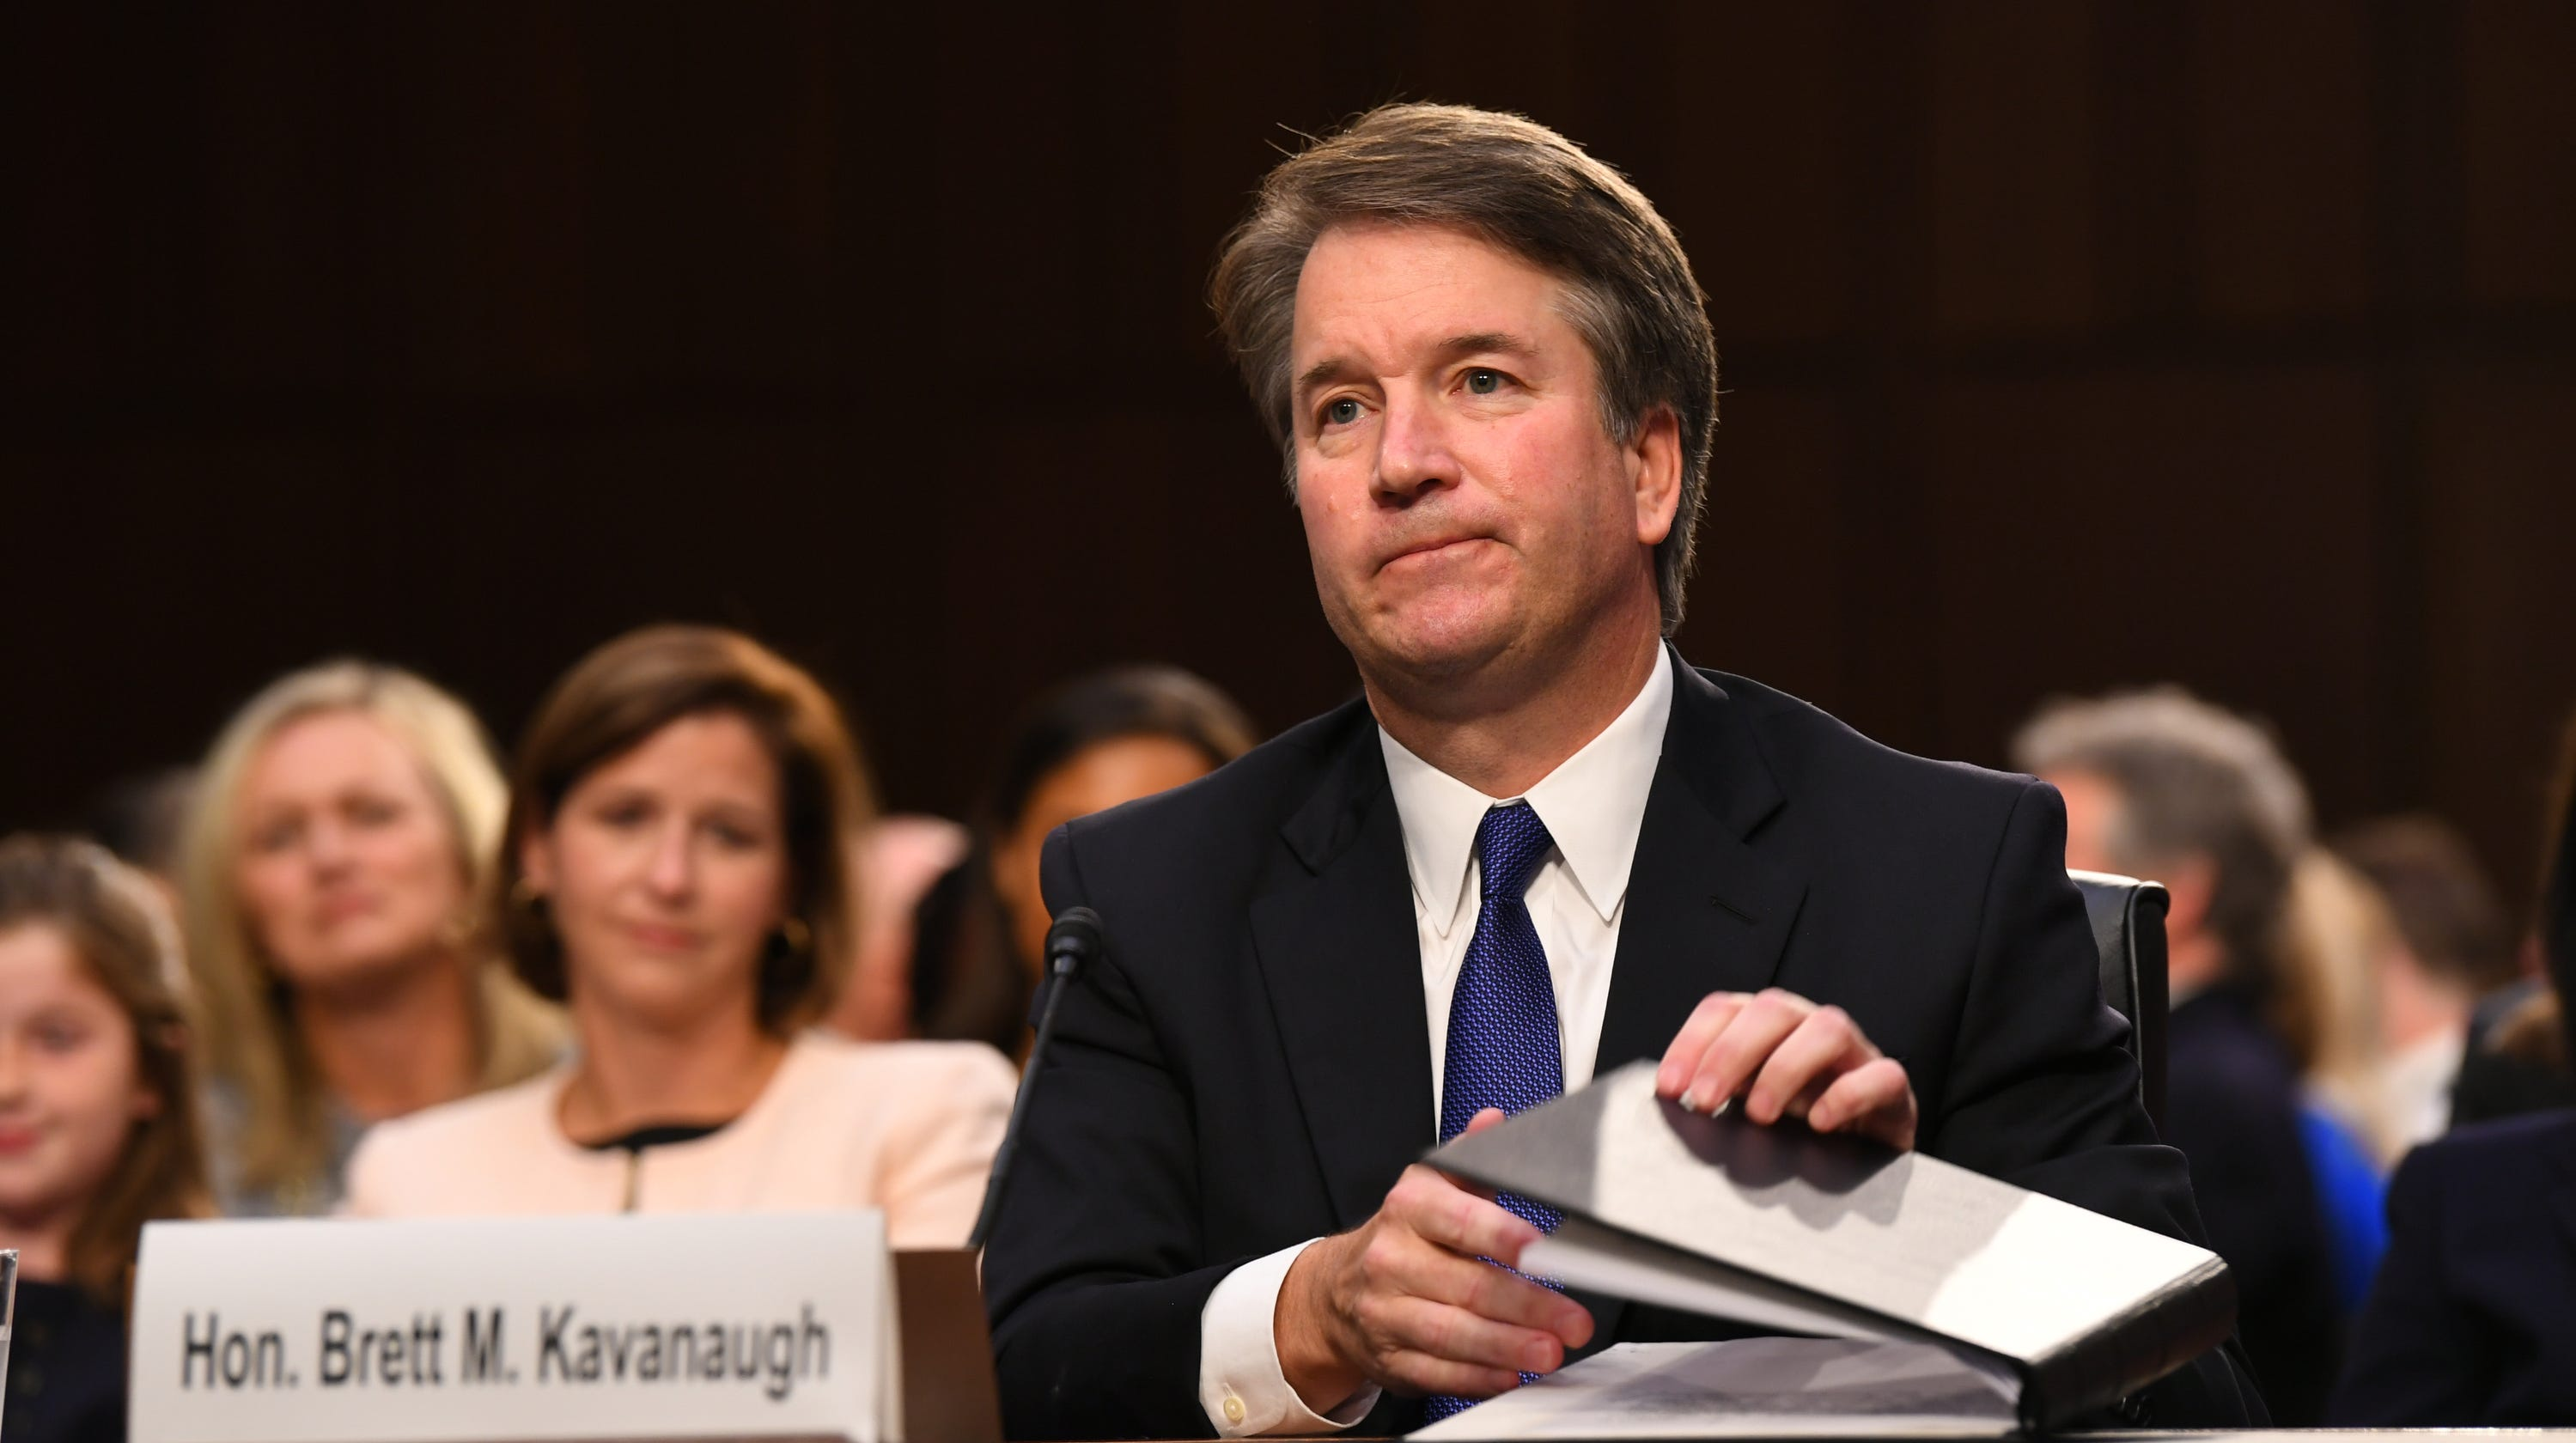 Image result for PHOTOS OF KAVANAUGH AT 9/27/18 HEARING